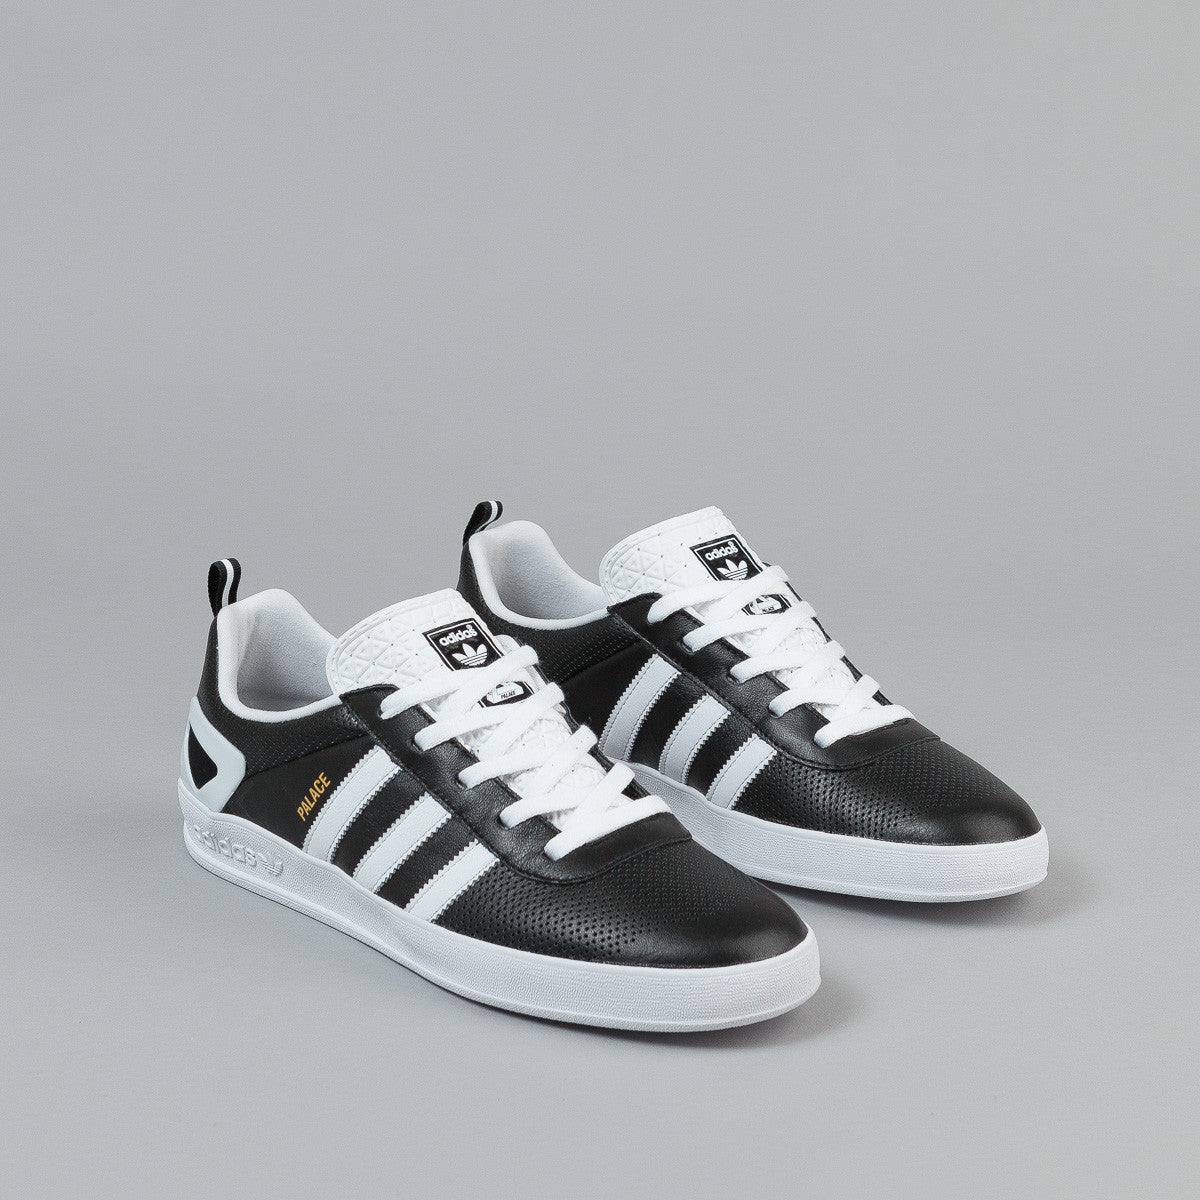 ... Adidas X Palace Pro Shoes - Black / White / Gold ...